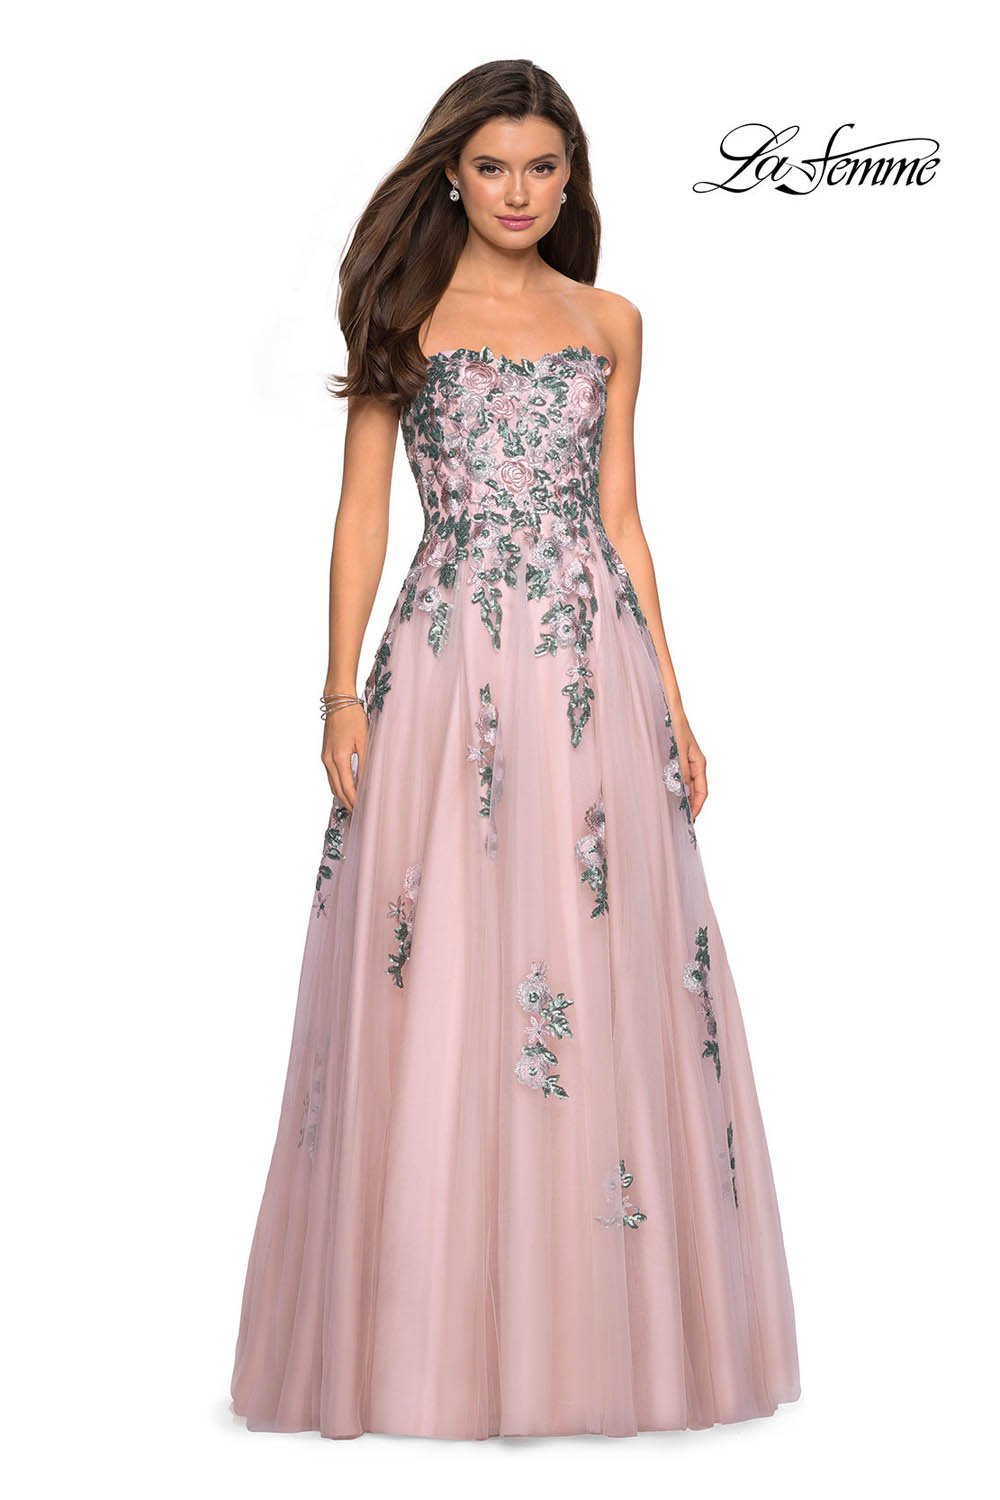 Gigi by La Femme 27816 prom dress images.  Gigi by La Femme 27816 is available in these colors: Blush.